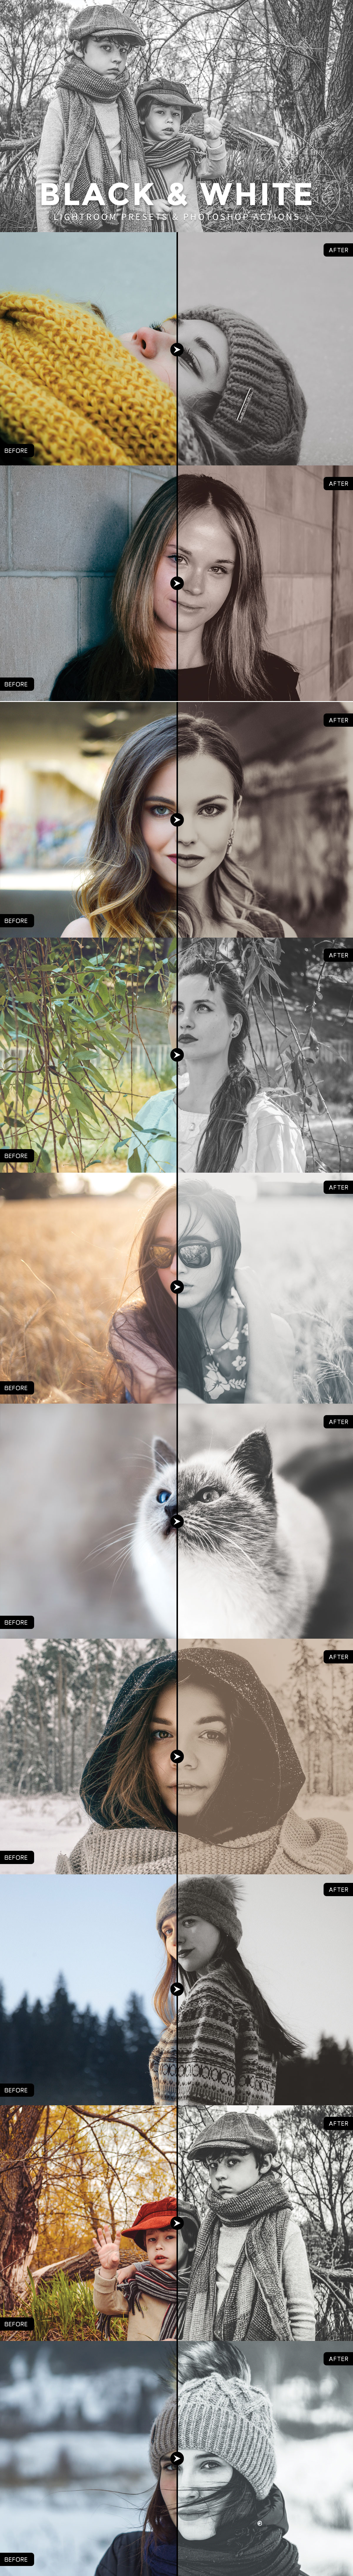 Free #Black and #White Lightroom #Presets are so handy and very easy to use.